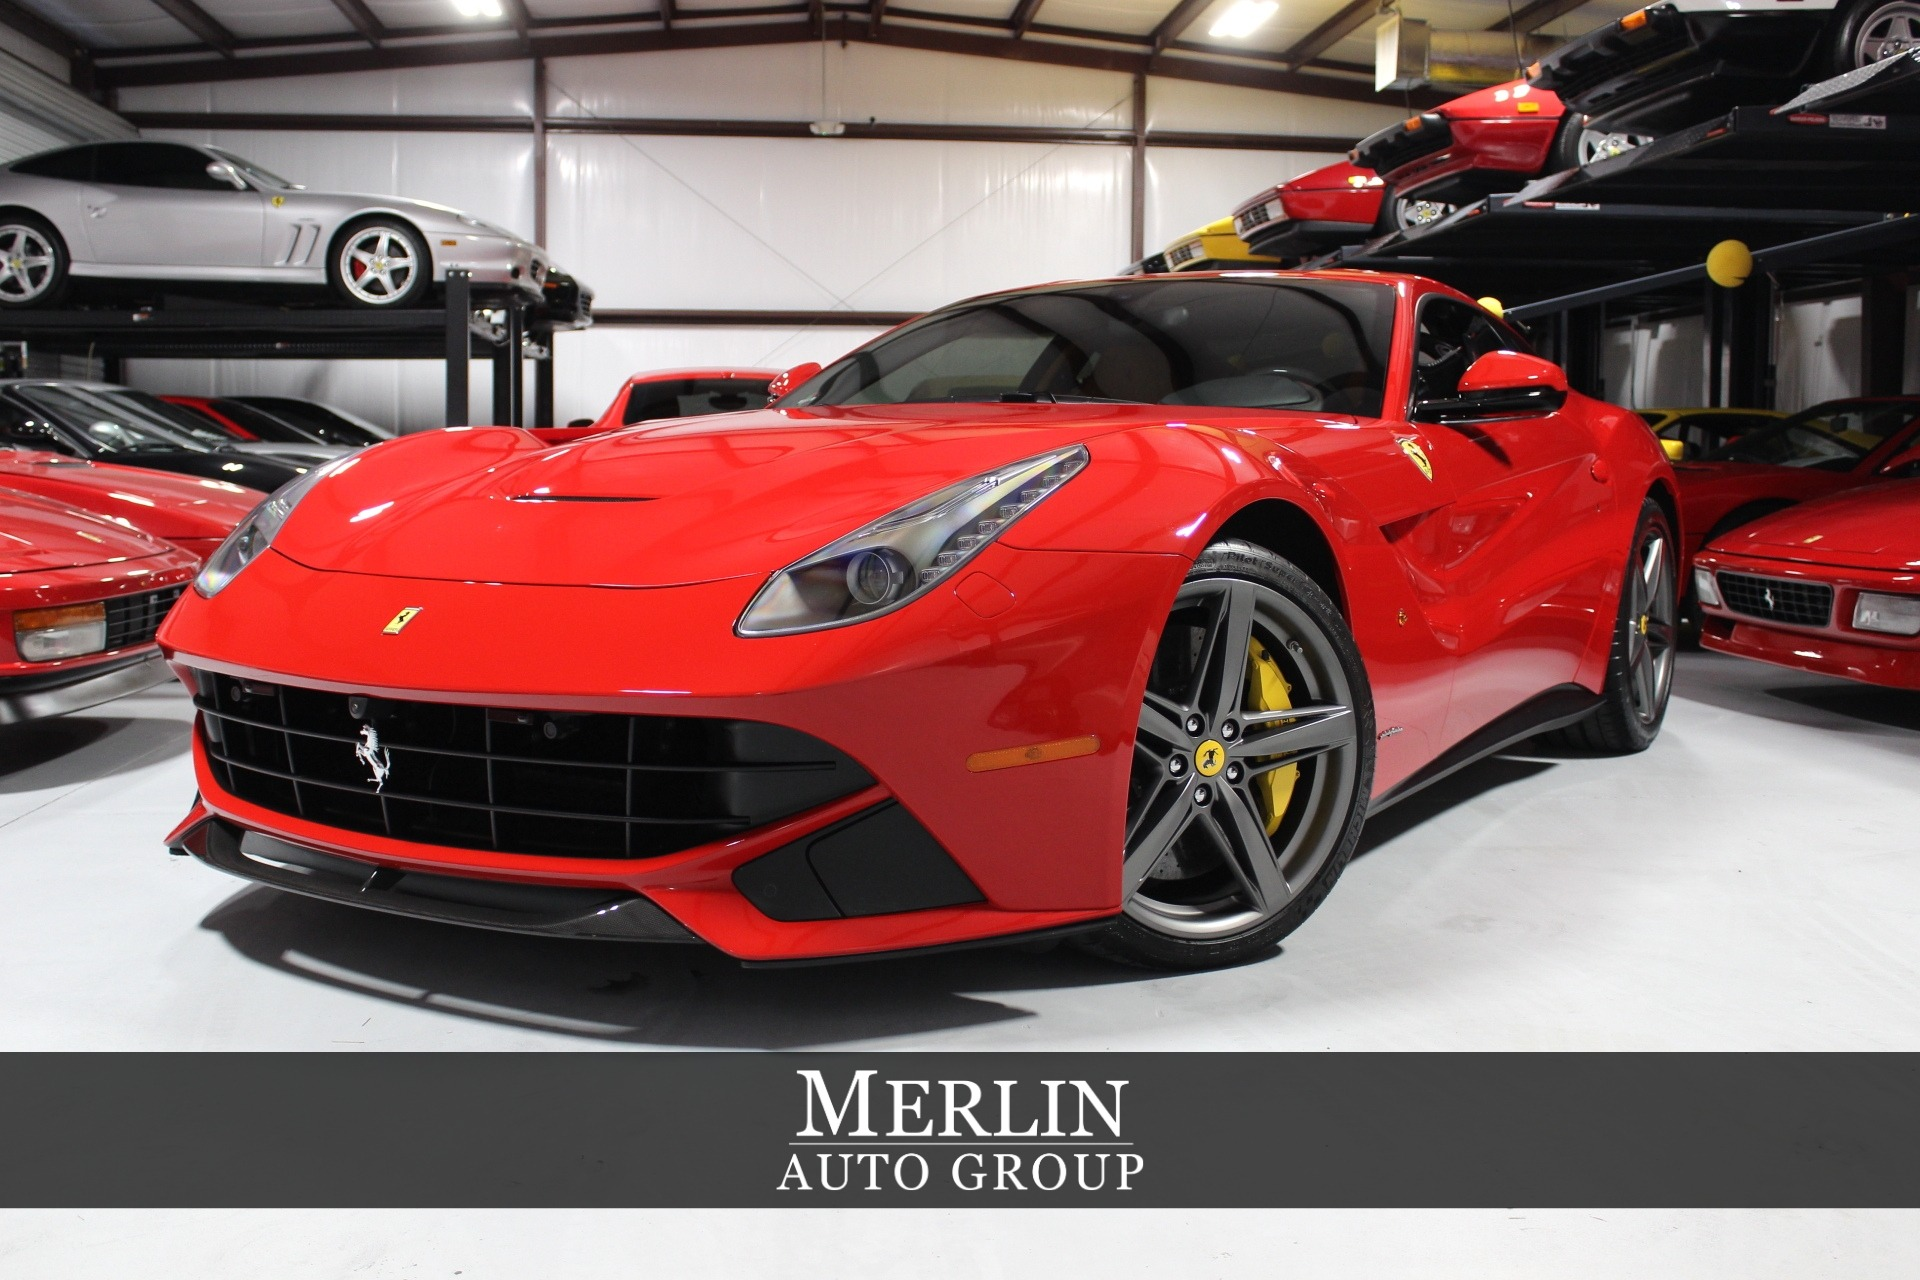 Considerations For Purchasing A Used Ferrari